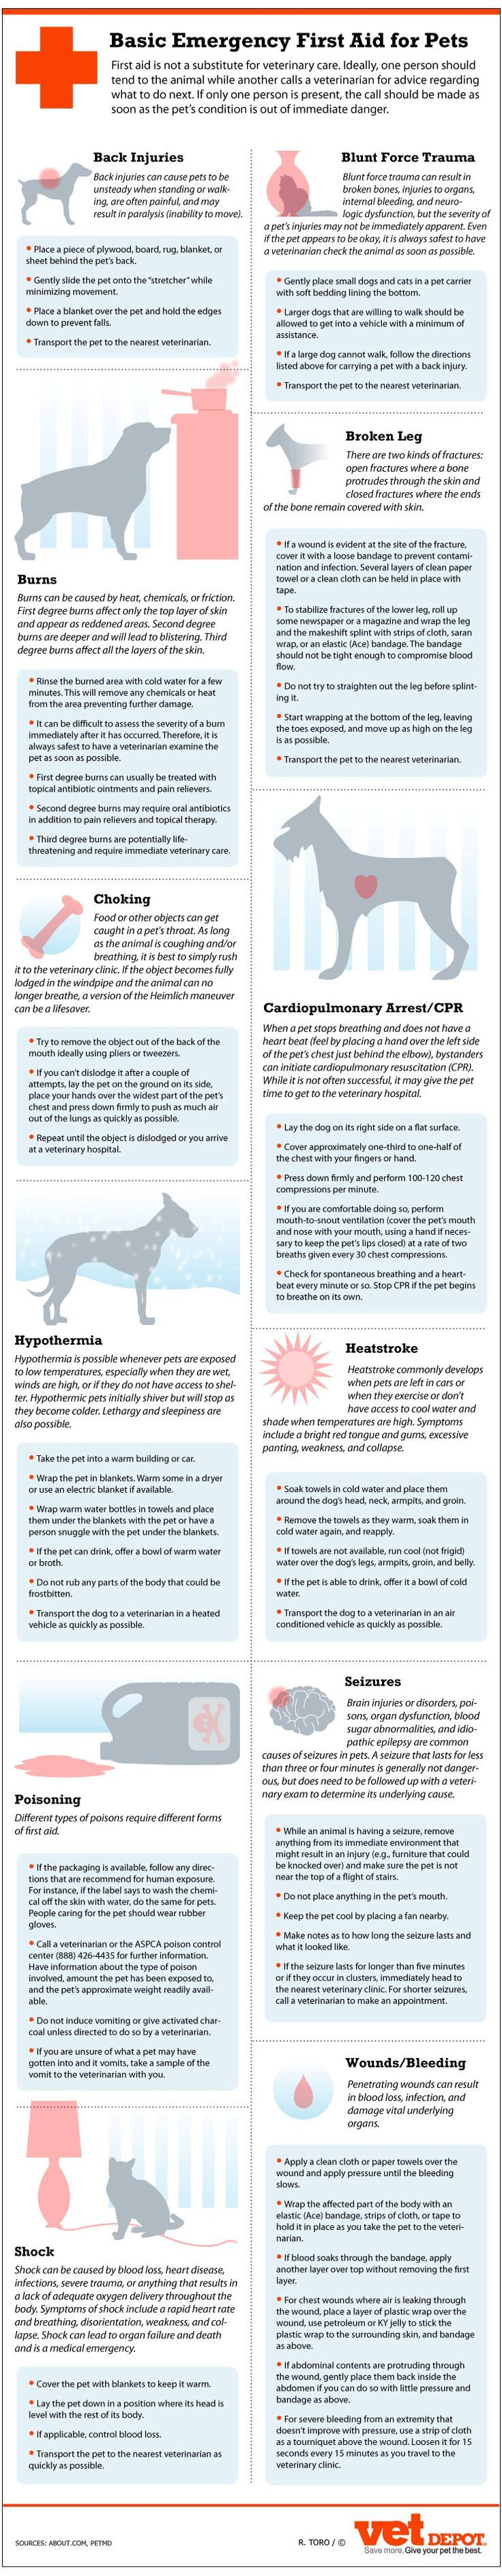 Basic Emergency First-Aid for Pets #Infographic #PetTips